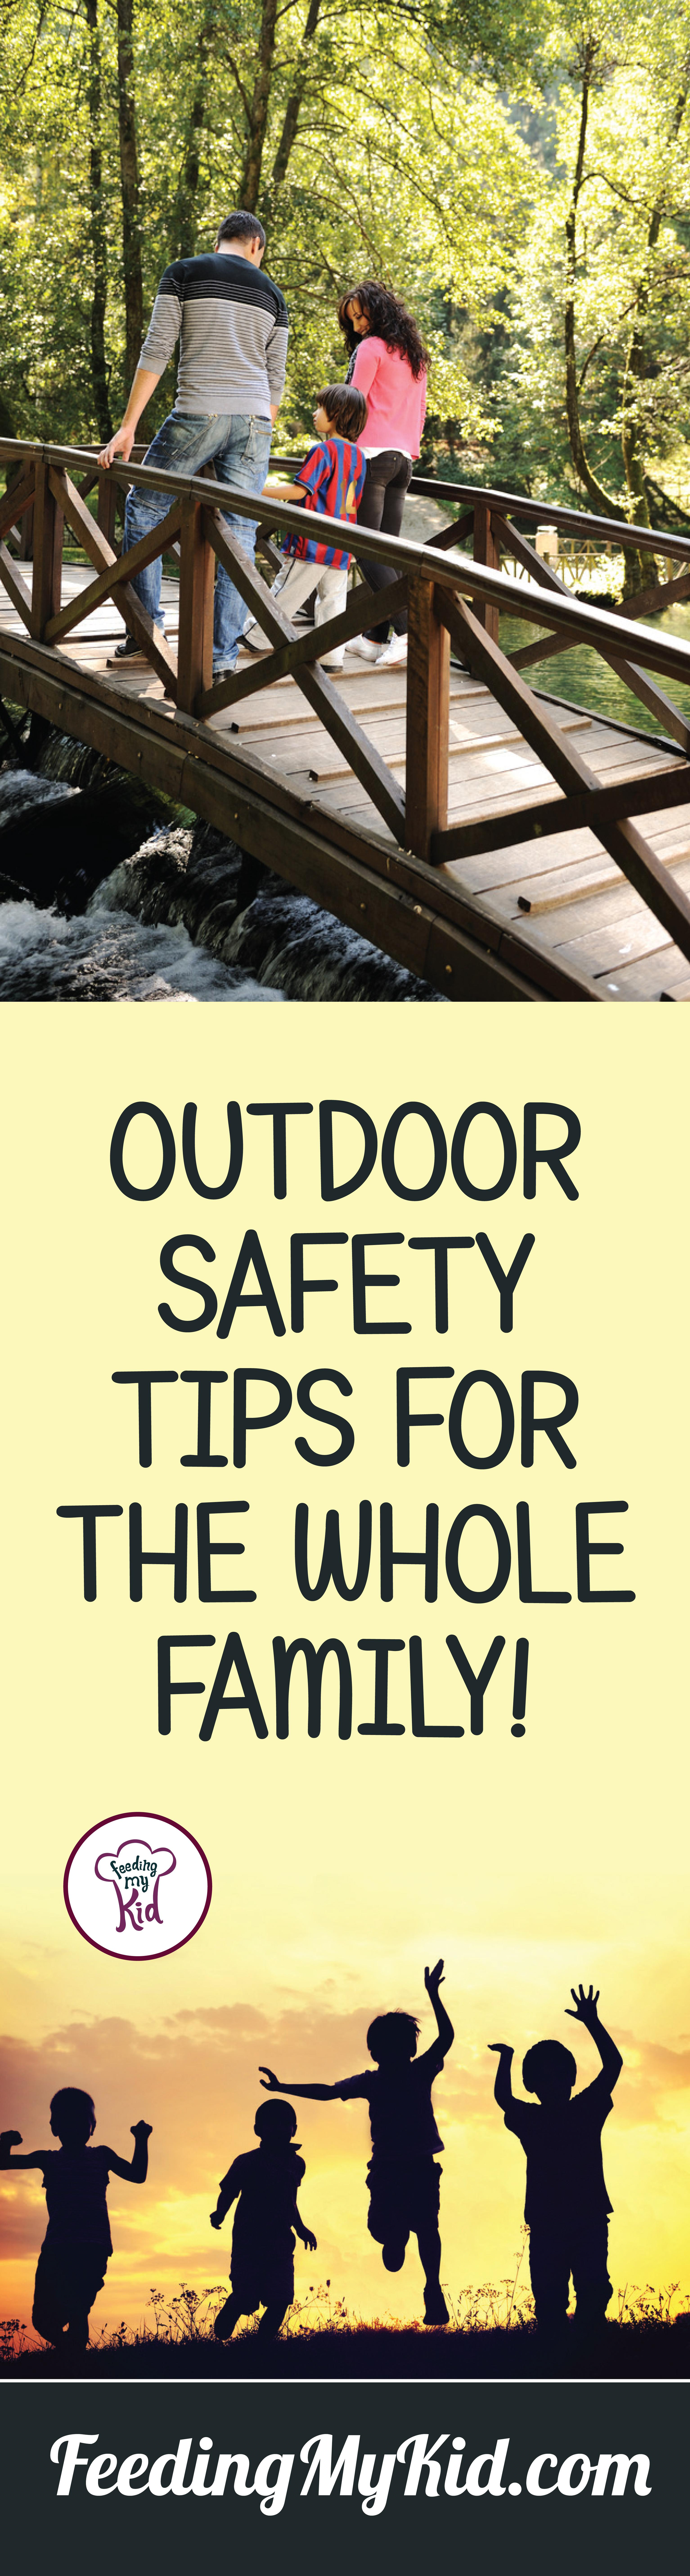 This is a must share! Whether it's a family outdoor trip or your child is going outside to play, why not make outdoor safety a priority! Check out this video to help you and your family learn some essential outdoor safety tips. Feeding My Kid is a filled with all the information you need about how to raise your kids, from healthy tips to nutritious recipes. #FeedingMyKid #safetytips #outdoortips